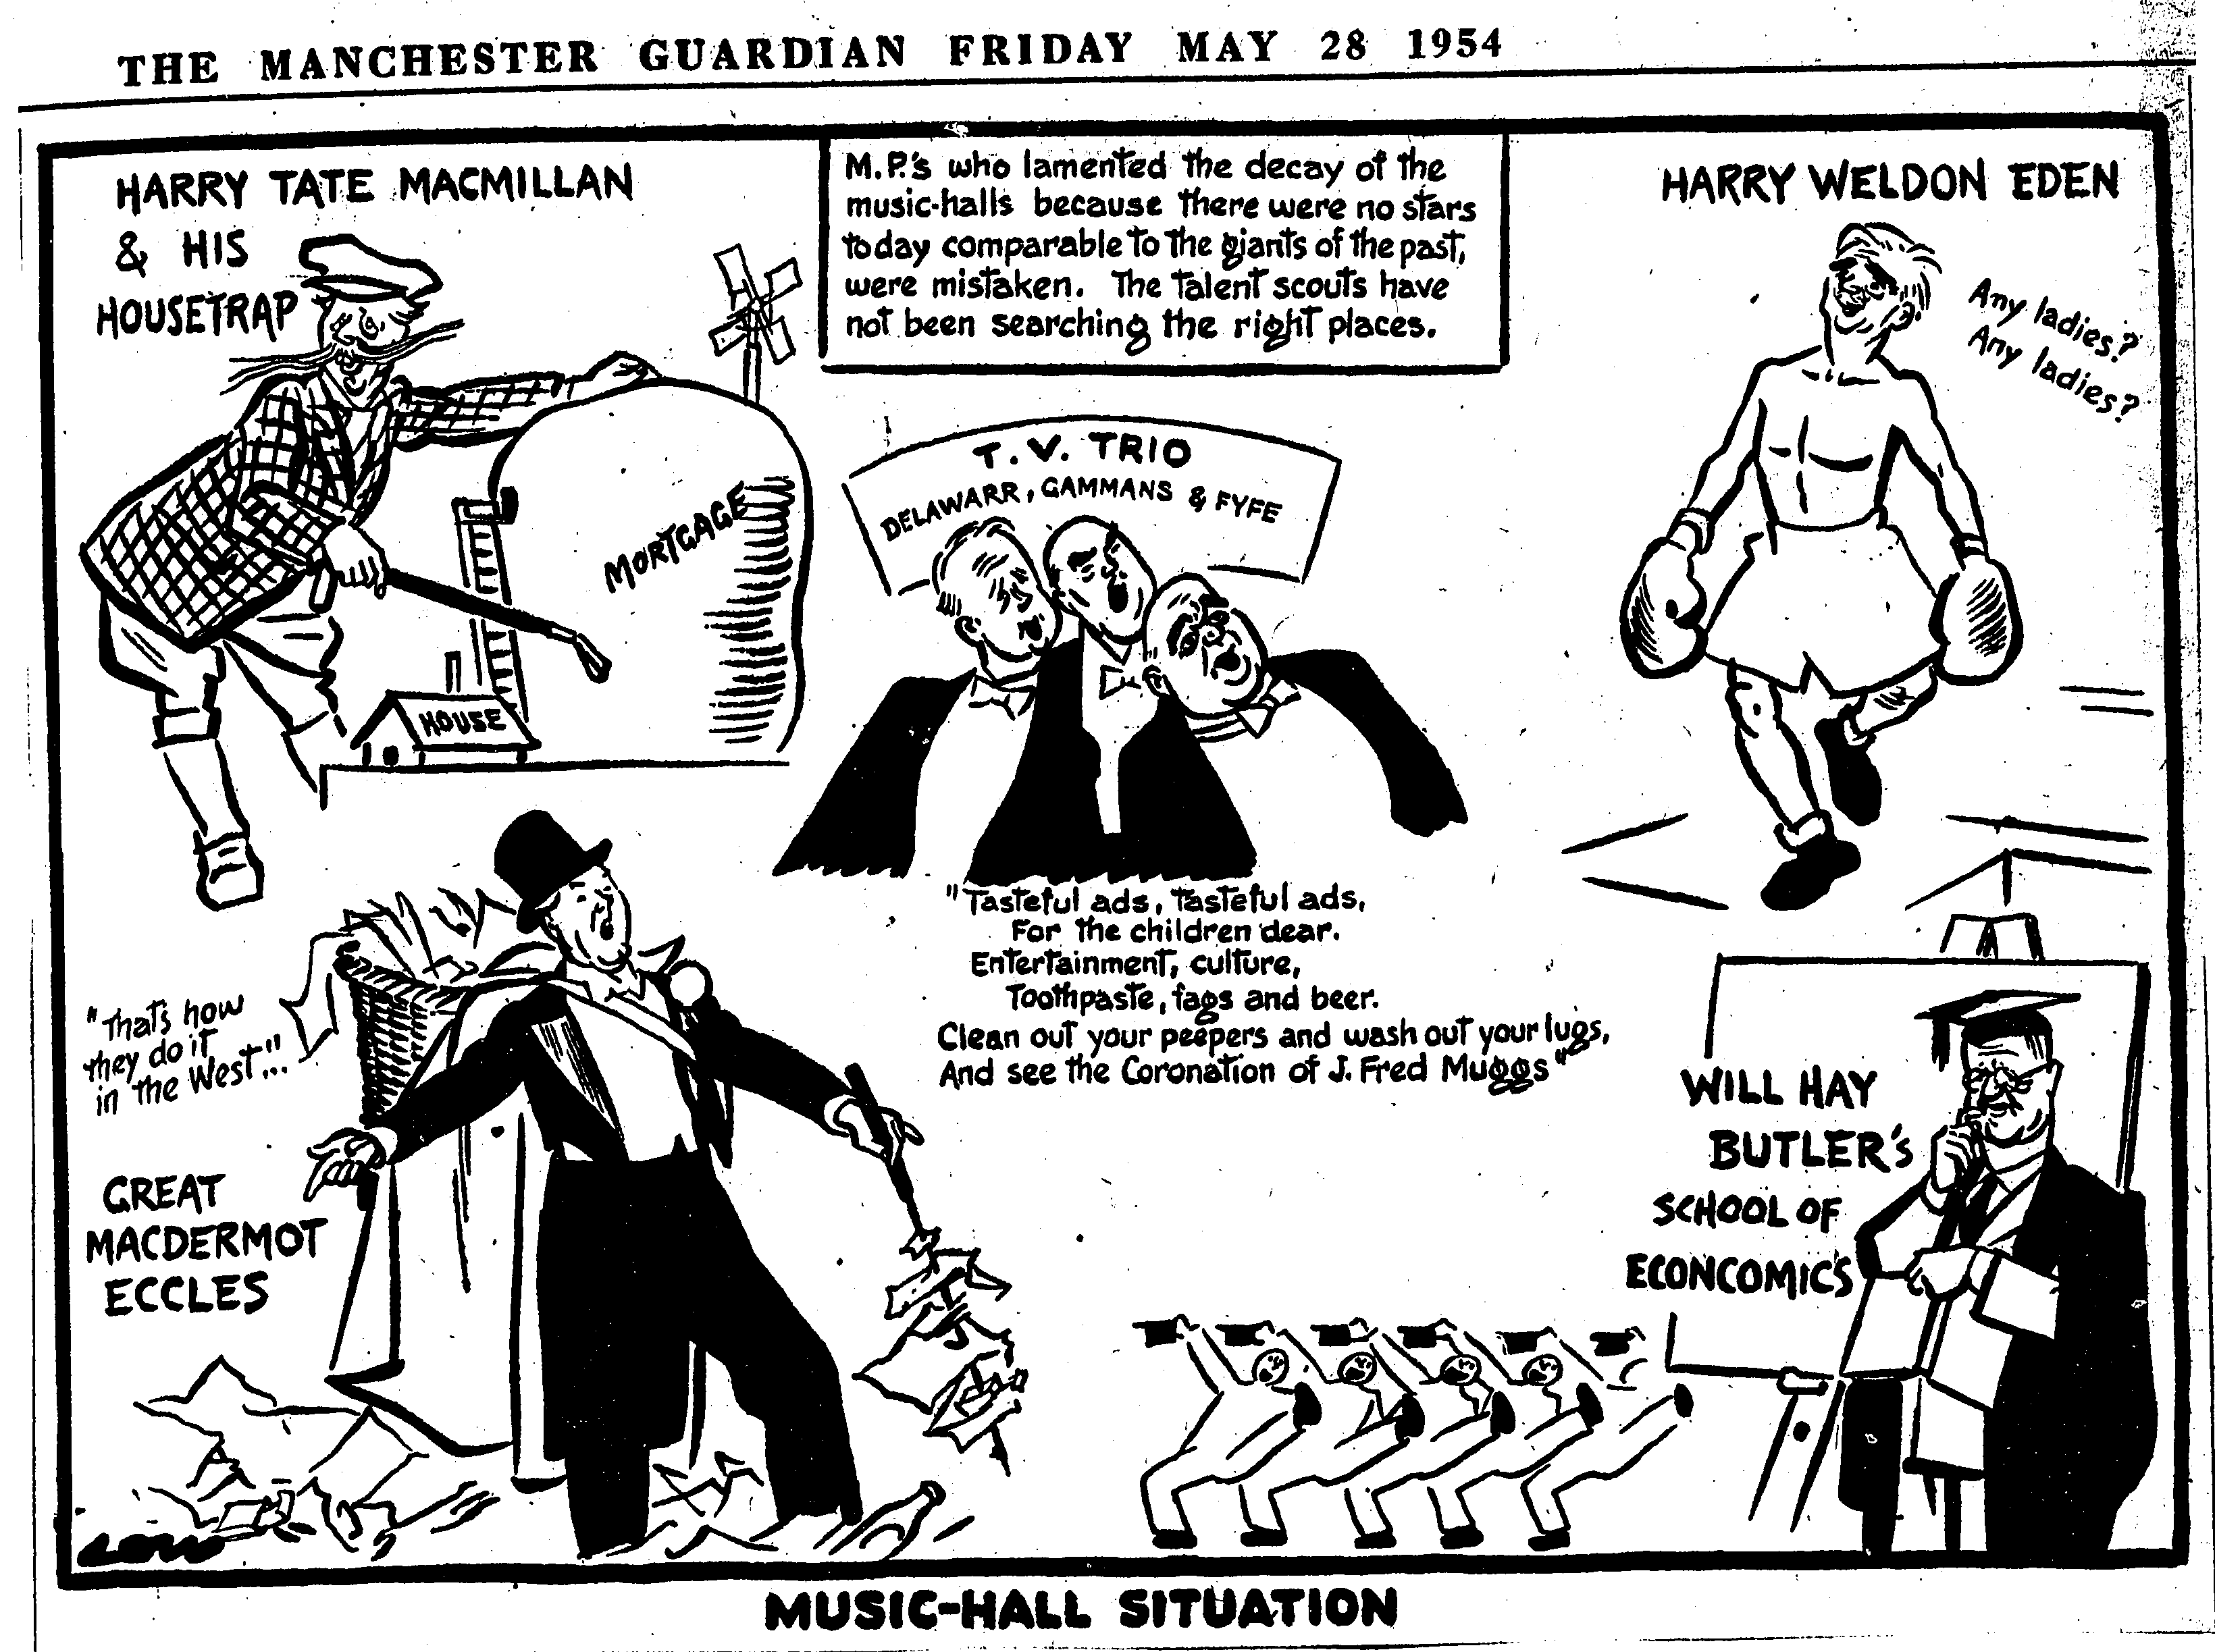 Cartoon by David Low comparing the current political situation to a night of music hall entertainment